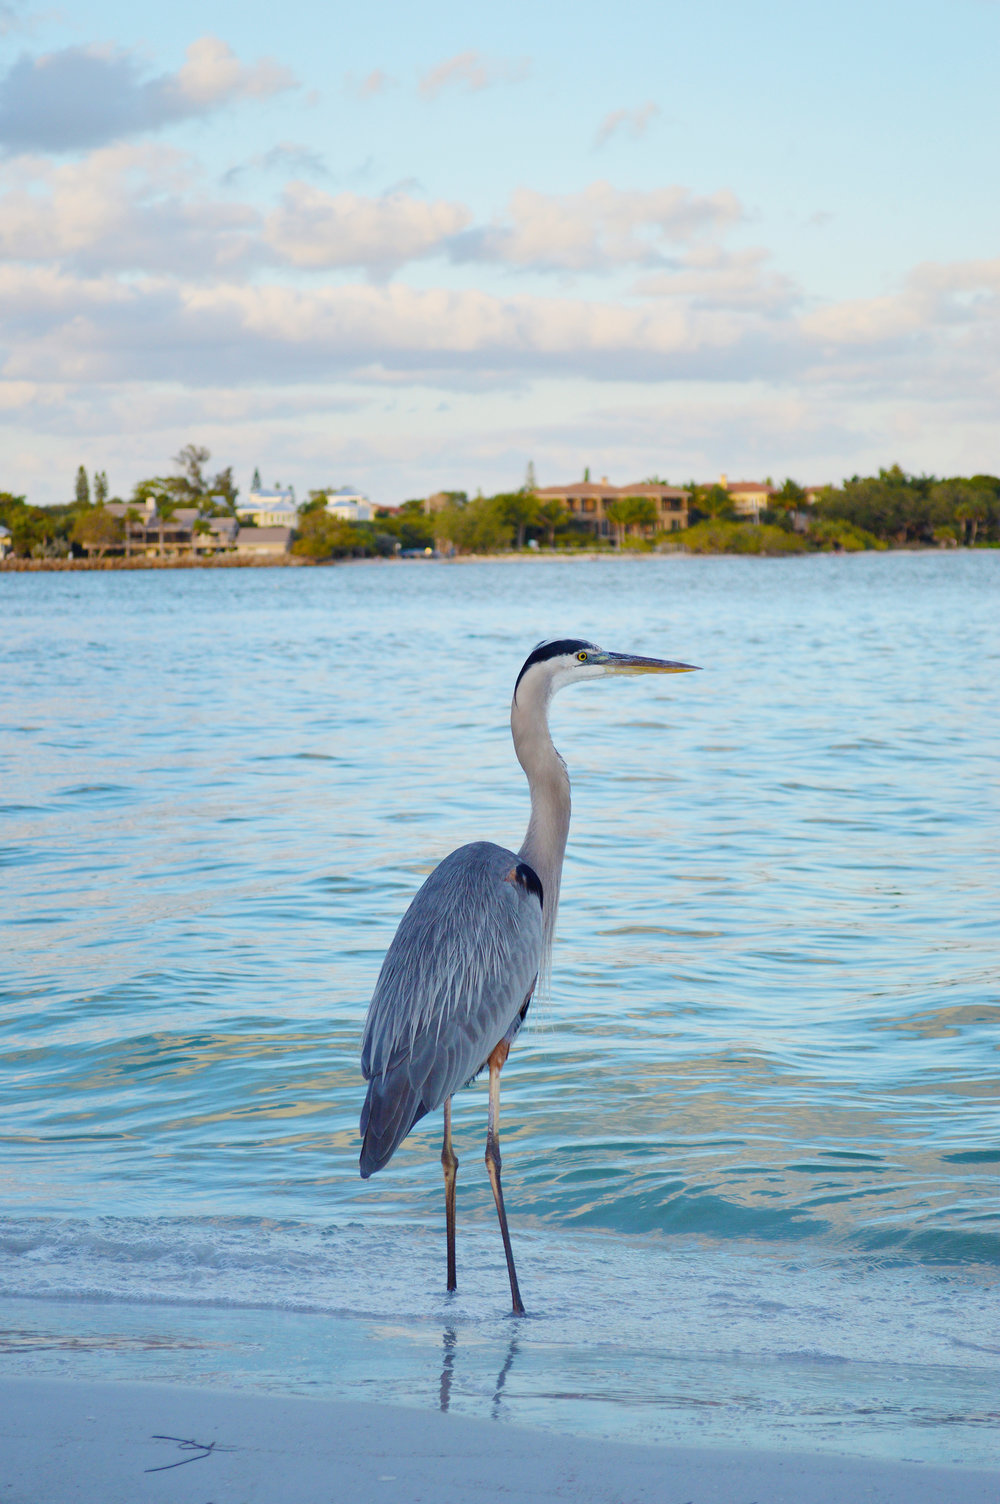 Lido Key Sarasota Florida Bird on Beach Photo by Kristen Laczi